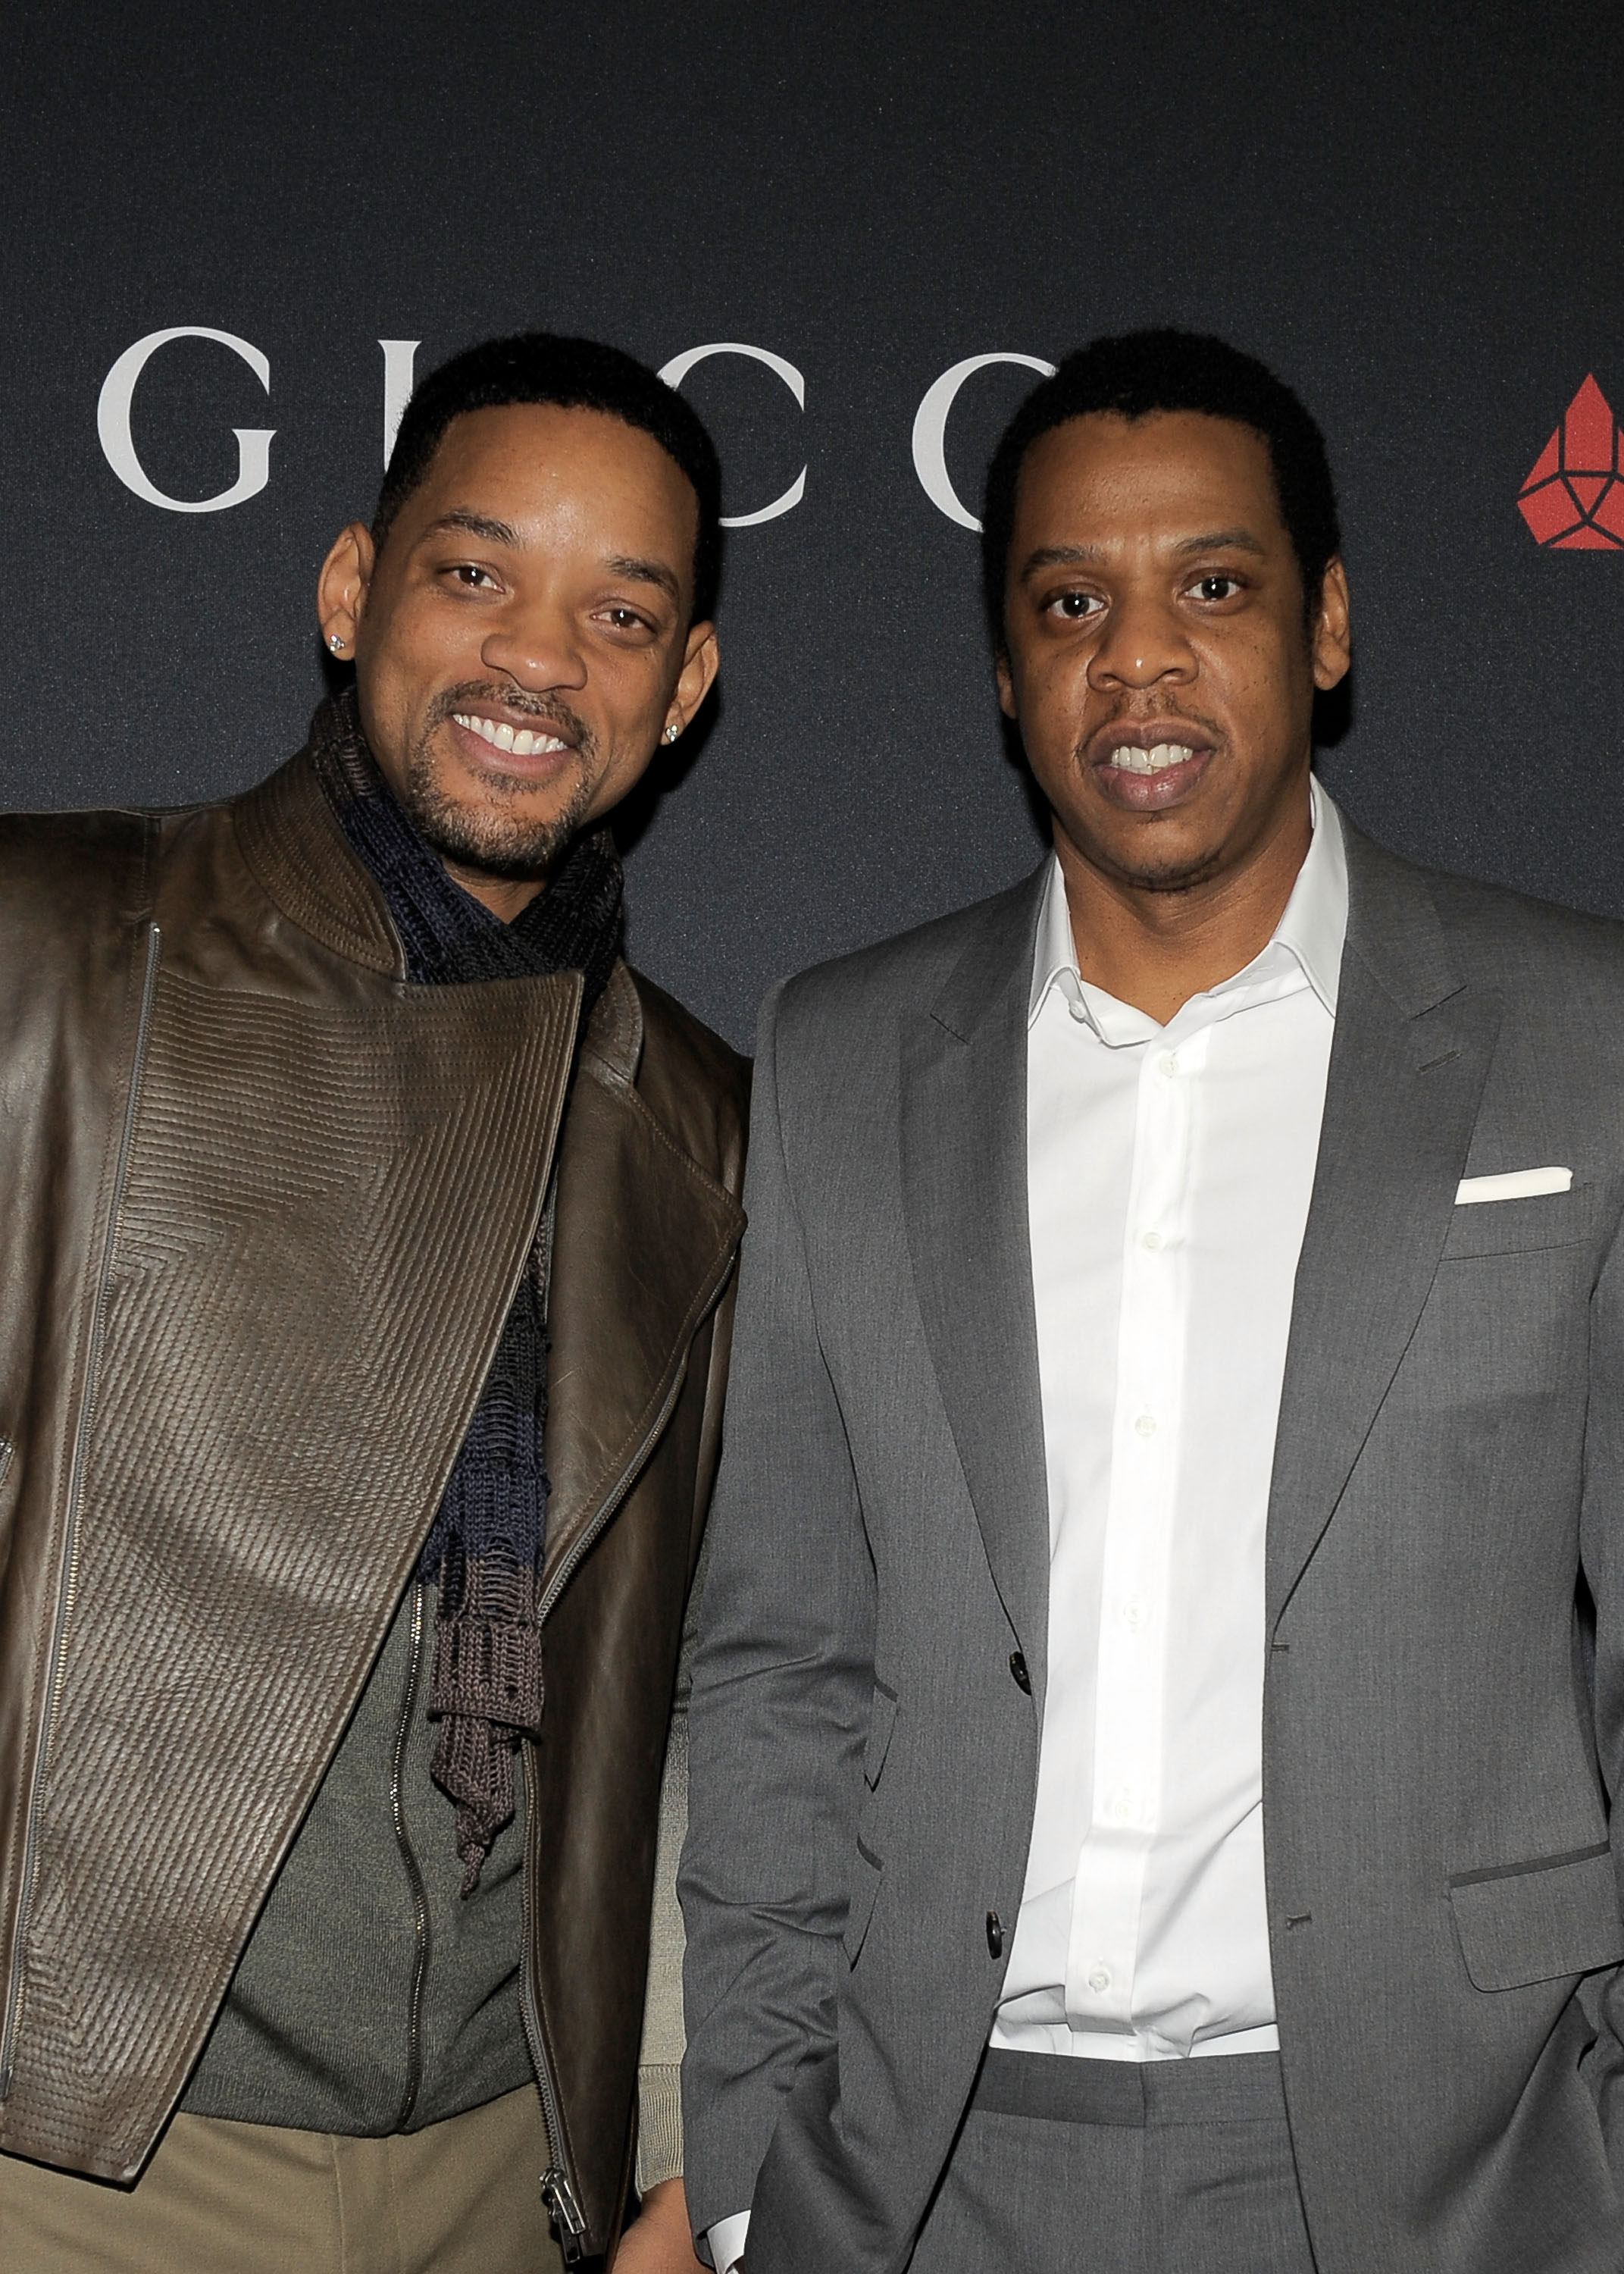 Actor Will Smith (L) and Rapper Jay-Z arrive at the Gucci and RocNation Pre-GRAMMY brunch held at Soho House on February 12, 2011 in West Hollywood, California.